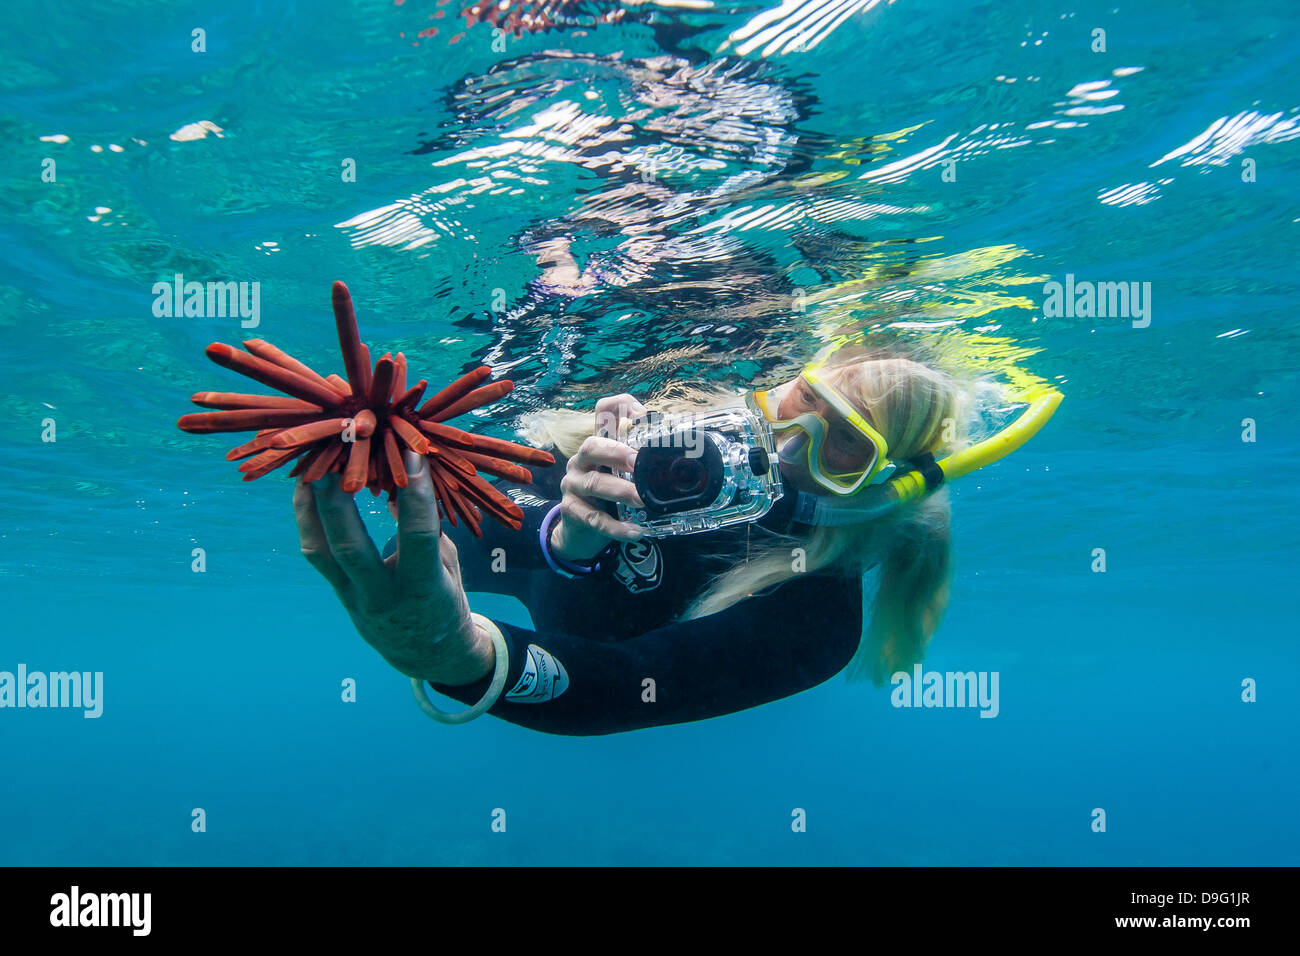 Snorkeler taking photo of urchin underwater off Maui, Hawaii, United States of America - Stock Image